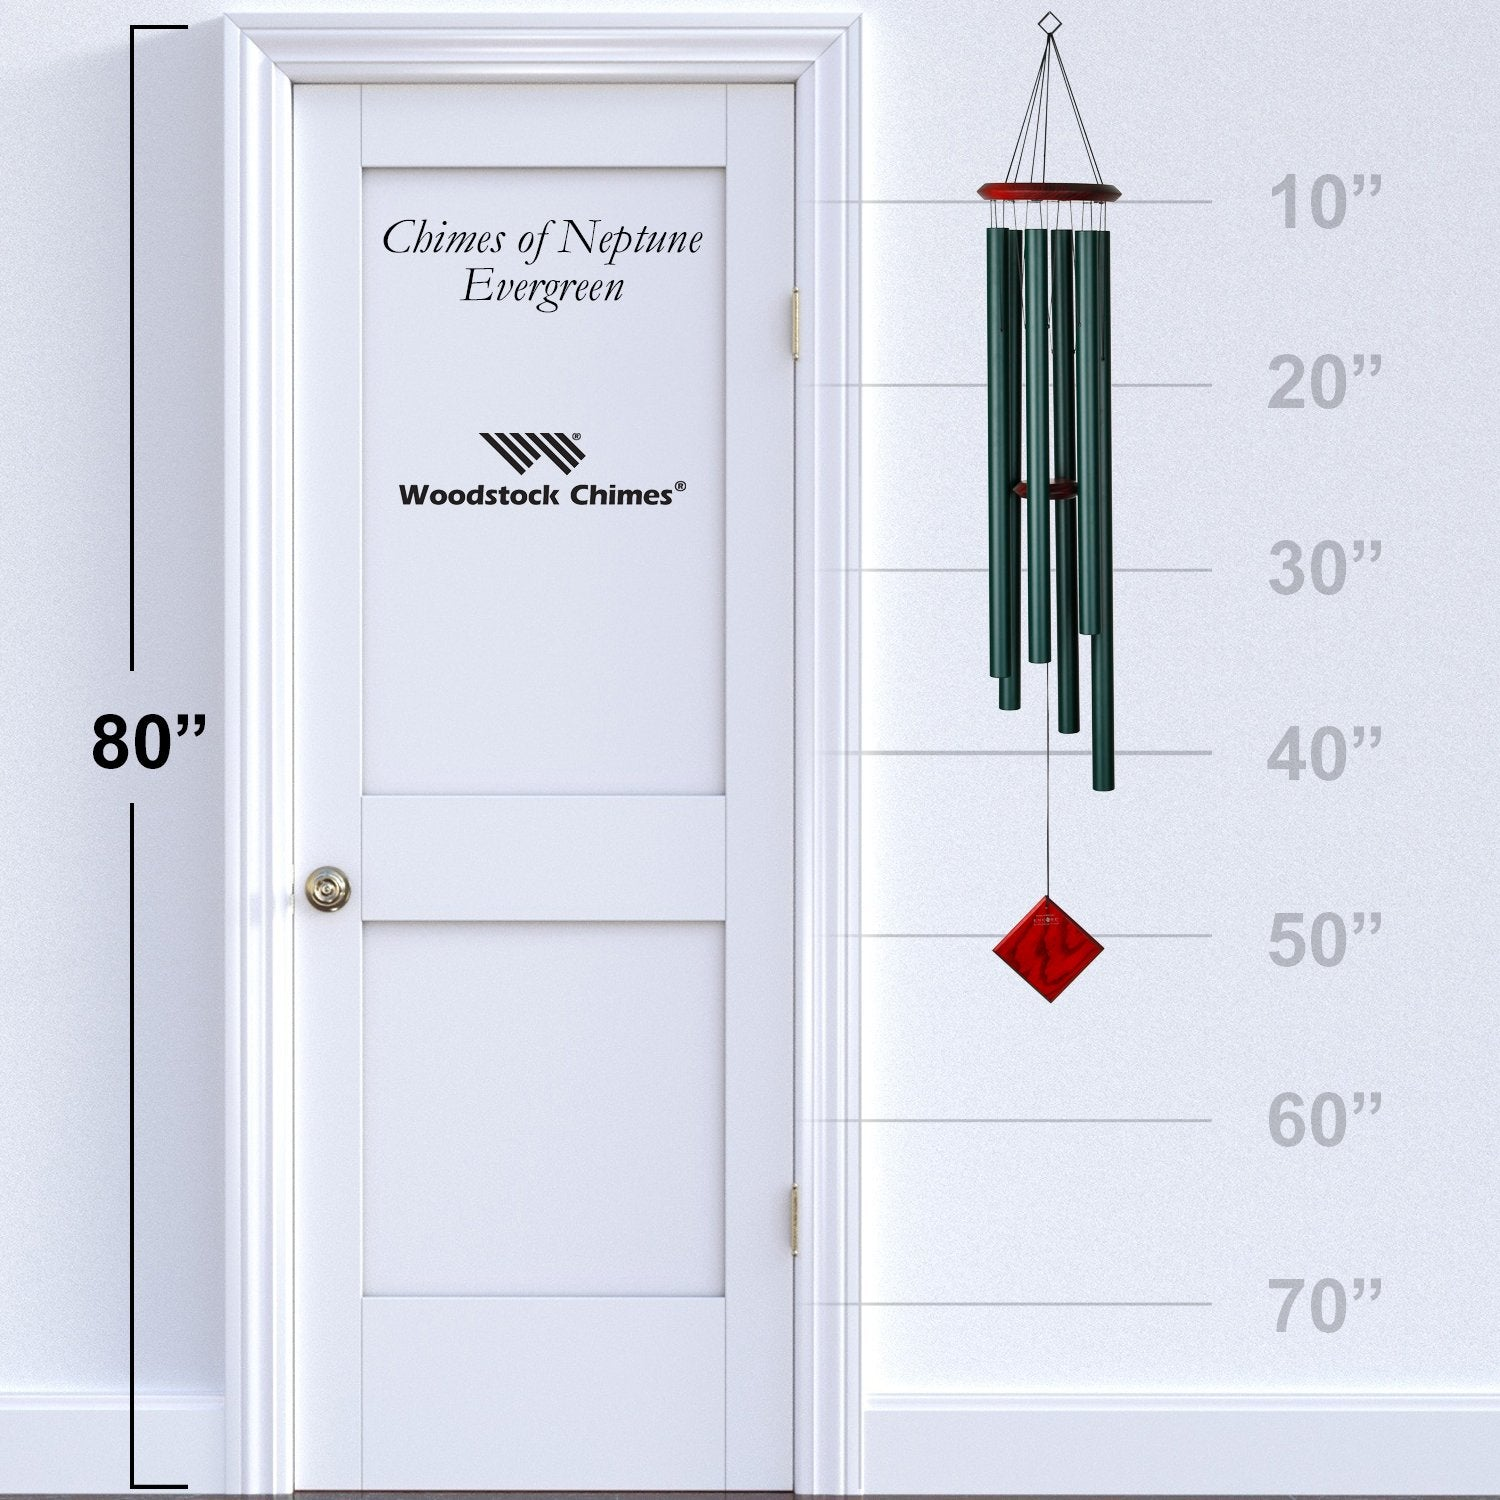 Encore Chimes of Neptune - Evergreen proportion image